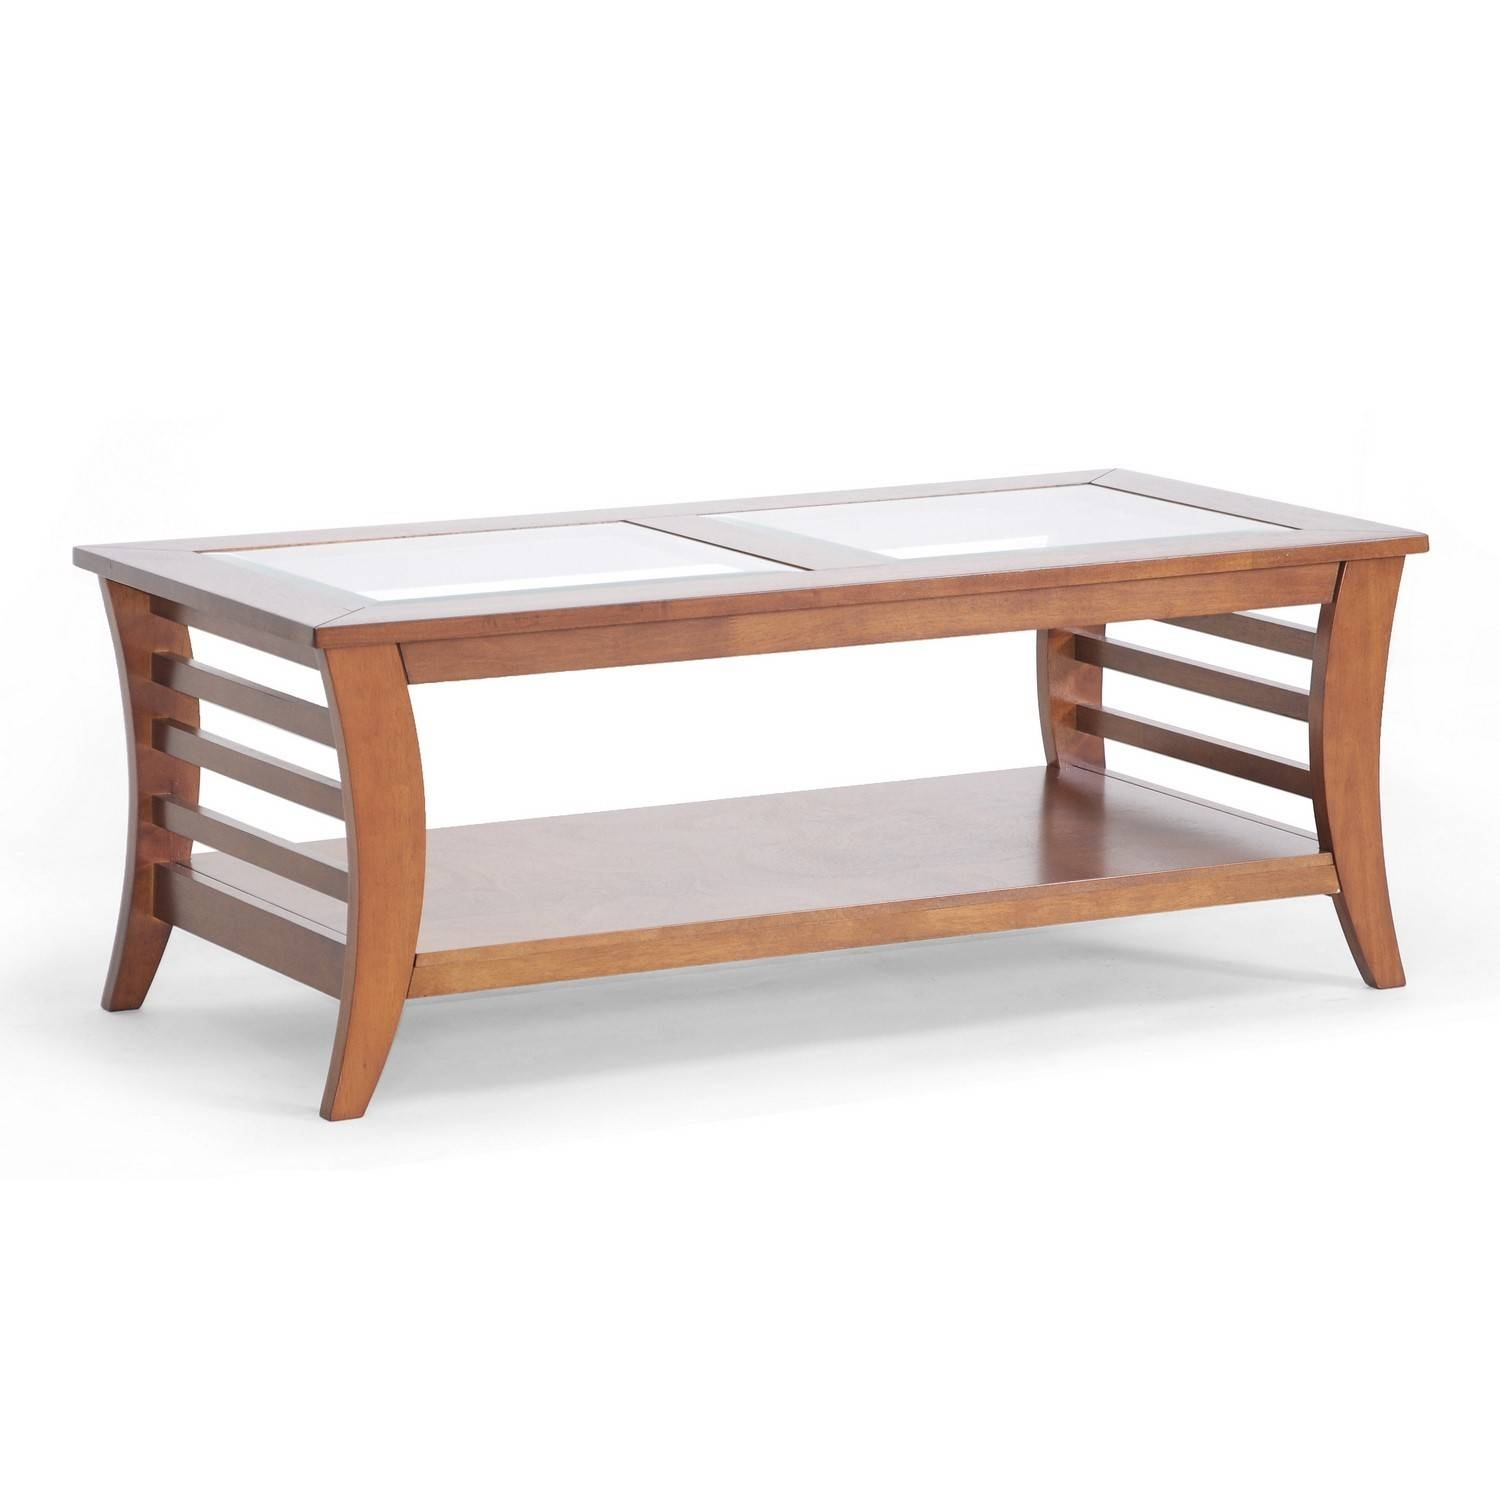 Furniture. Exciting Wood Glass Coffee Table Ideas: Brown Rectangle pertaining to Wooden and Glass Coffee Tables (Image 16 of 30)